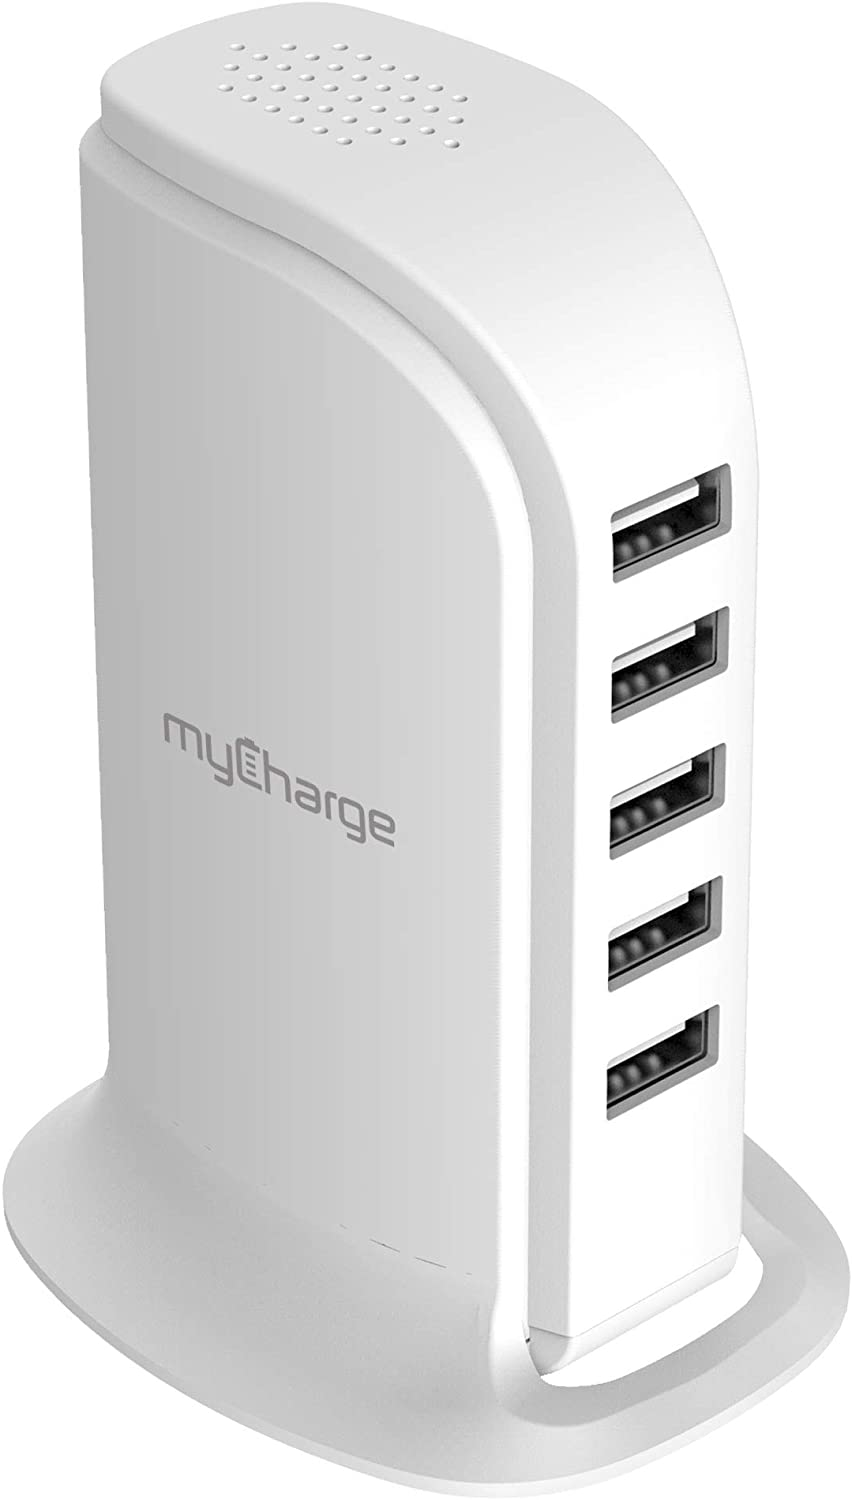 myCharge 5 Port USB Charging Station for Multiple Devices - 25W Desktop Tower Stand Family Hub Wall Charger for Apple iPhone, iPad, Watch & with Samsung Galaxy, Android Tablet, Cell Phone, Accessories